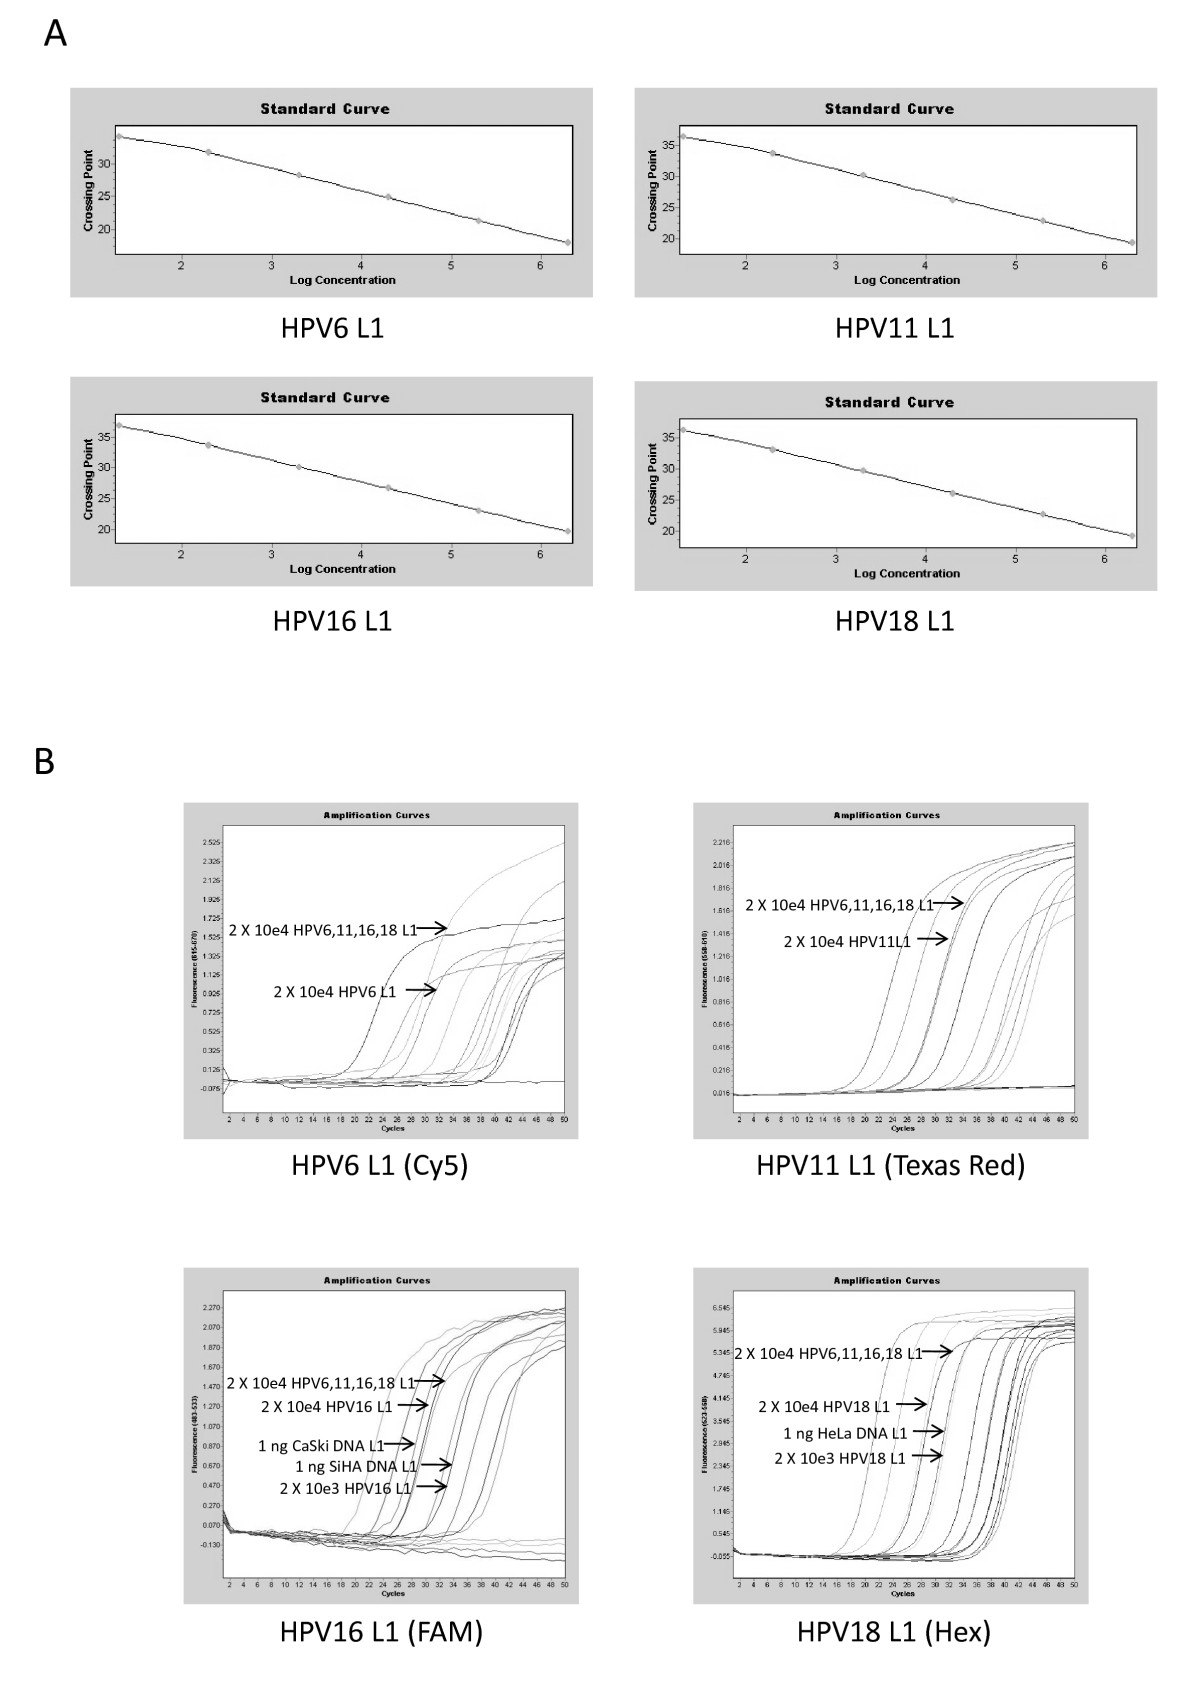 http://static-content.springer.com/image/art%3A10.1186%2F1743-422X-7-194/MediaObjects/12985_2010_Article_939_Fig3_HTML.jpg